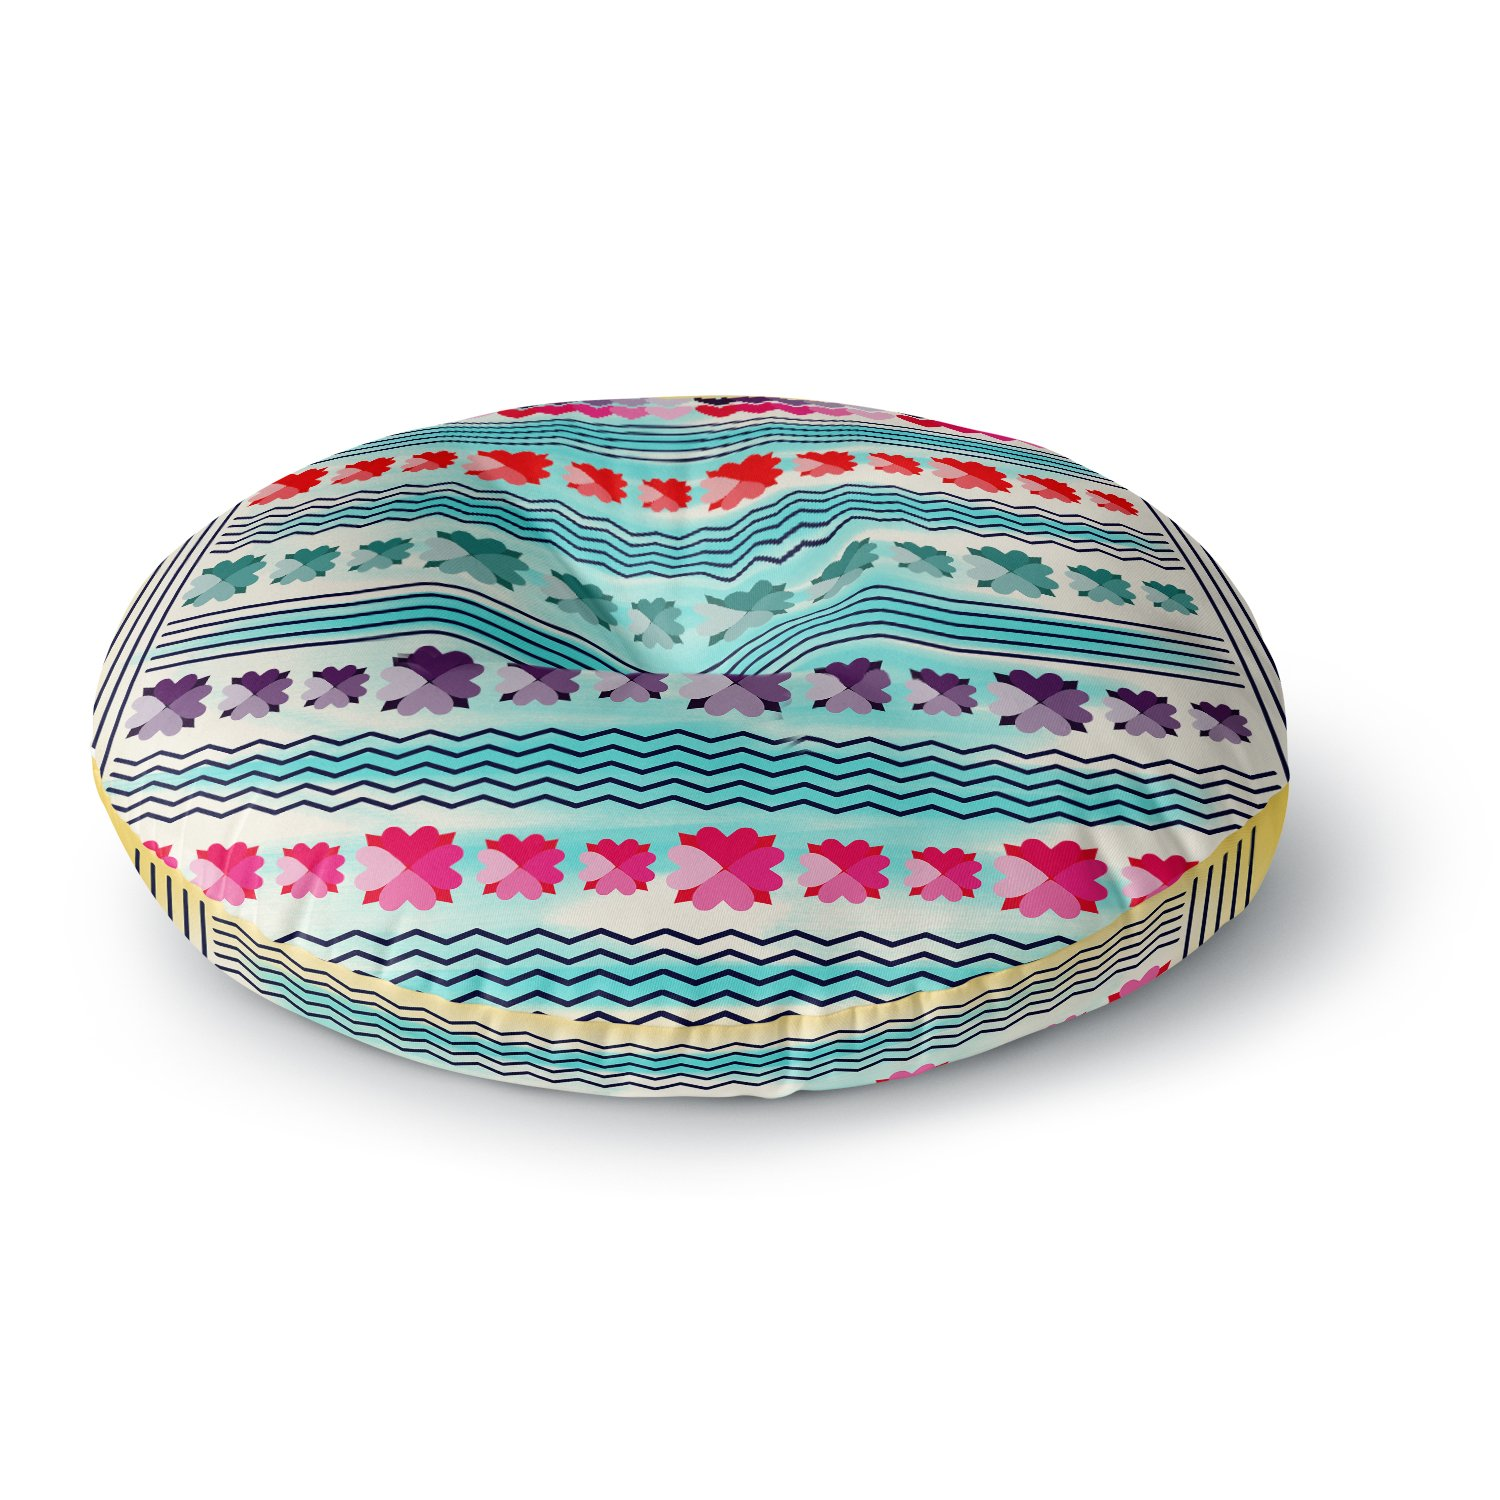 Kess InHouse Frederic Levy-Hadida Walk Off The Colors Multicolor Zebra 26 Round Floor Pillow